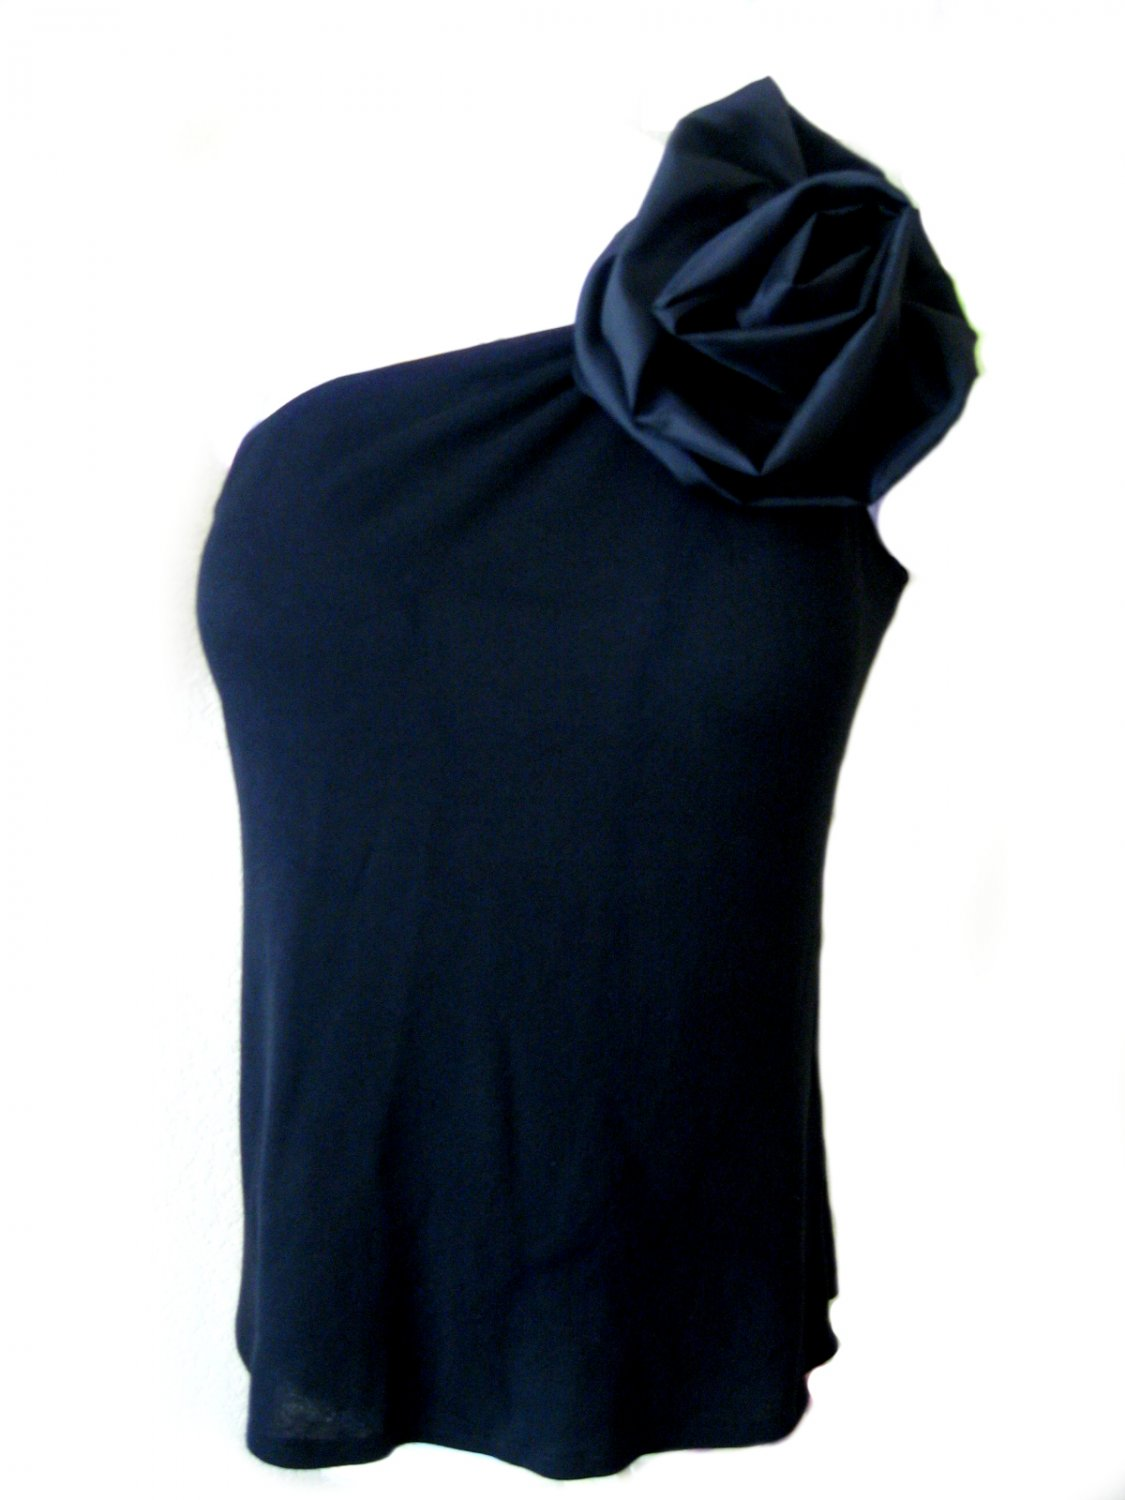 black one strap top/ Size:2XL